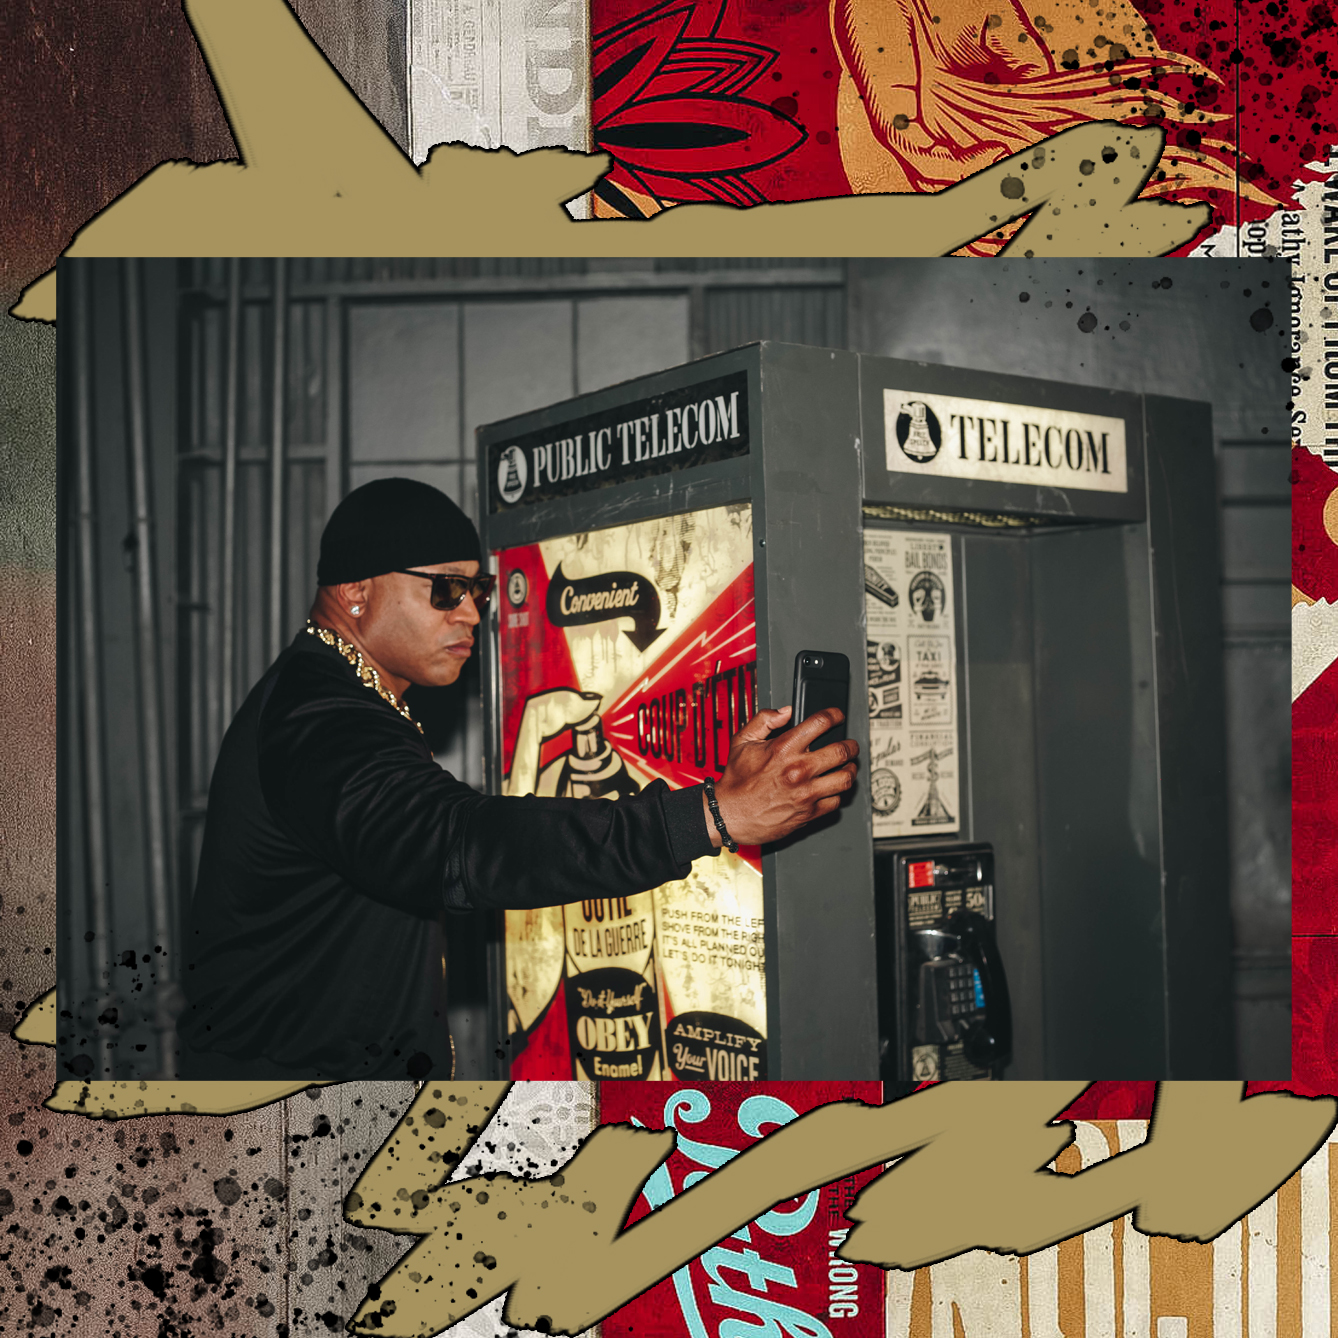 """LL COOL J VISITS SHEPARD FAIREY'S """"DAMAGED"""" EXHIBIT AND POSES IN FRONT OF JOHN TRACY'S PHONE BOOTH INSTALLATION / PHOTO CREDIT: SHEPARD FAIREY / DESIGN CREDIT: VANESSA ACOSTA"""